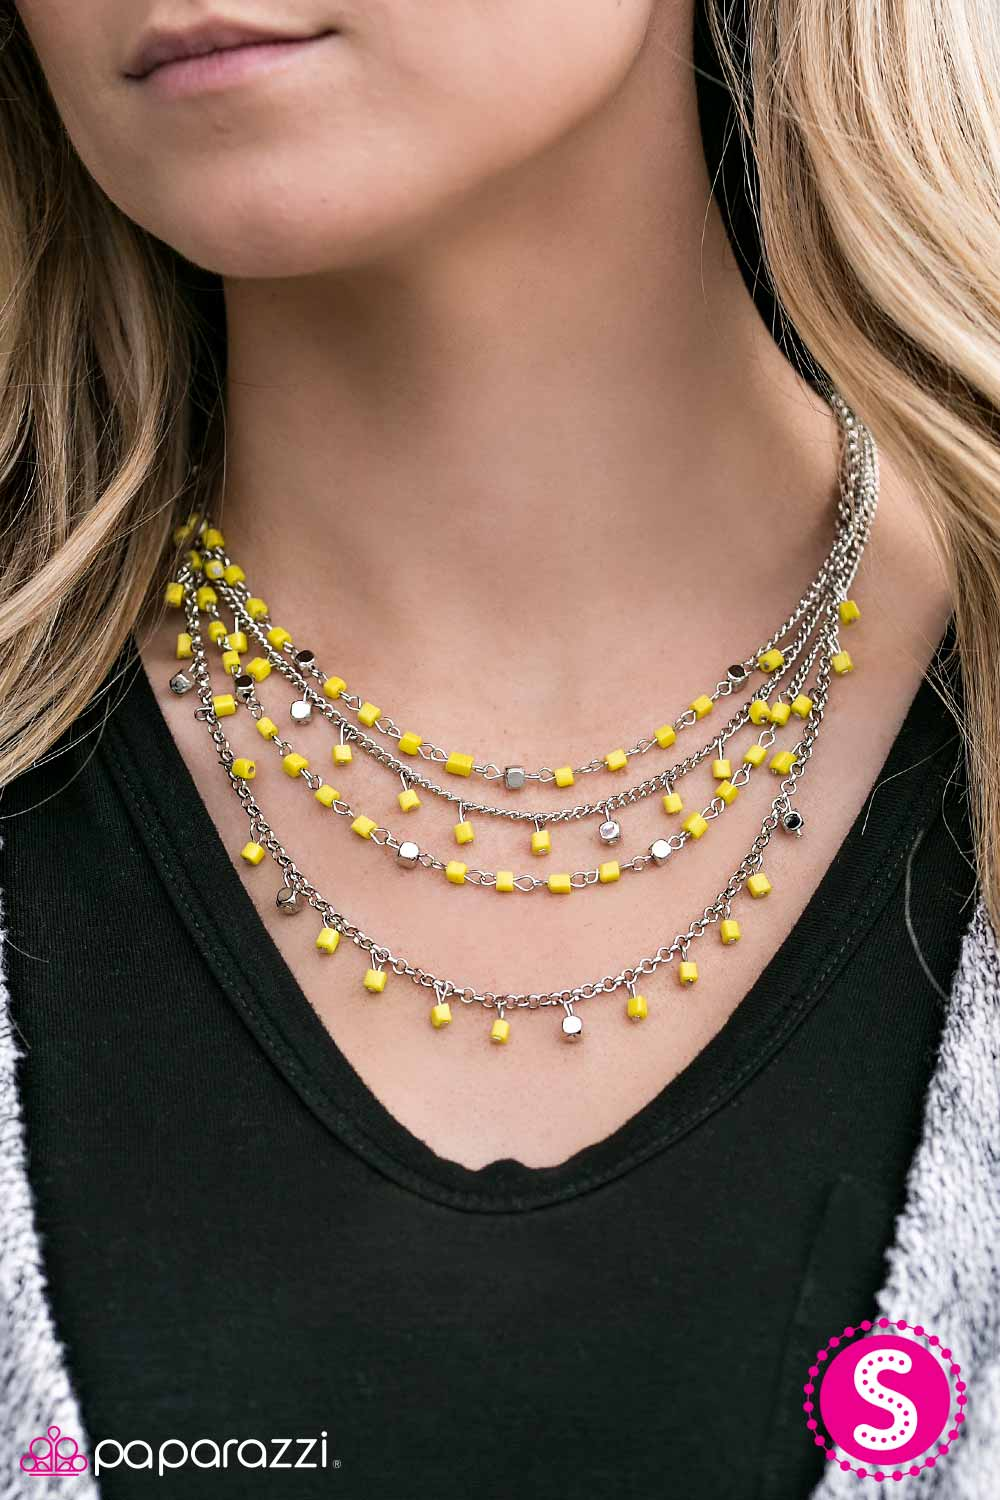 BLOCK Star - Yellow - Paparazzi necklace